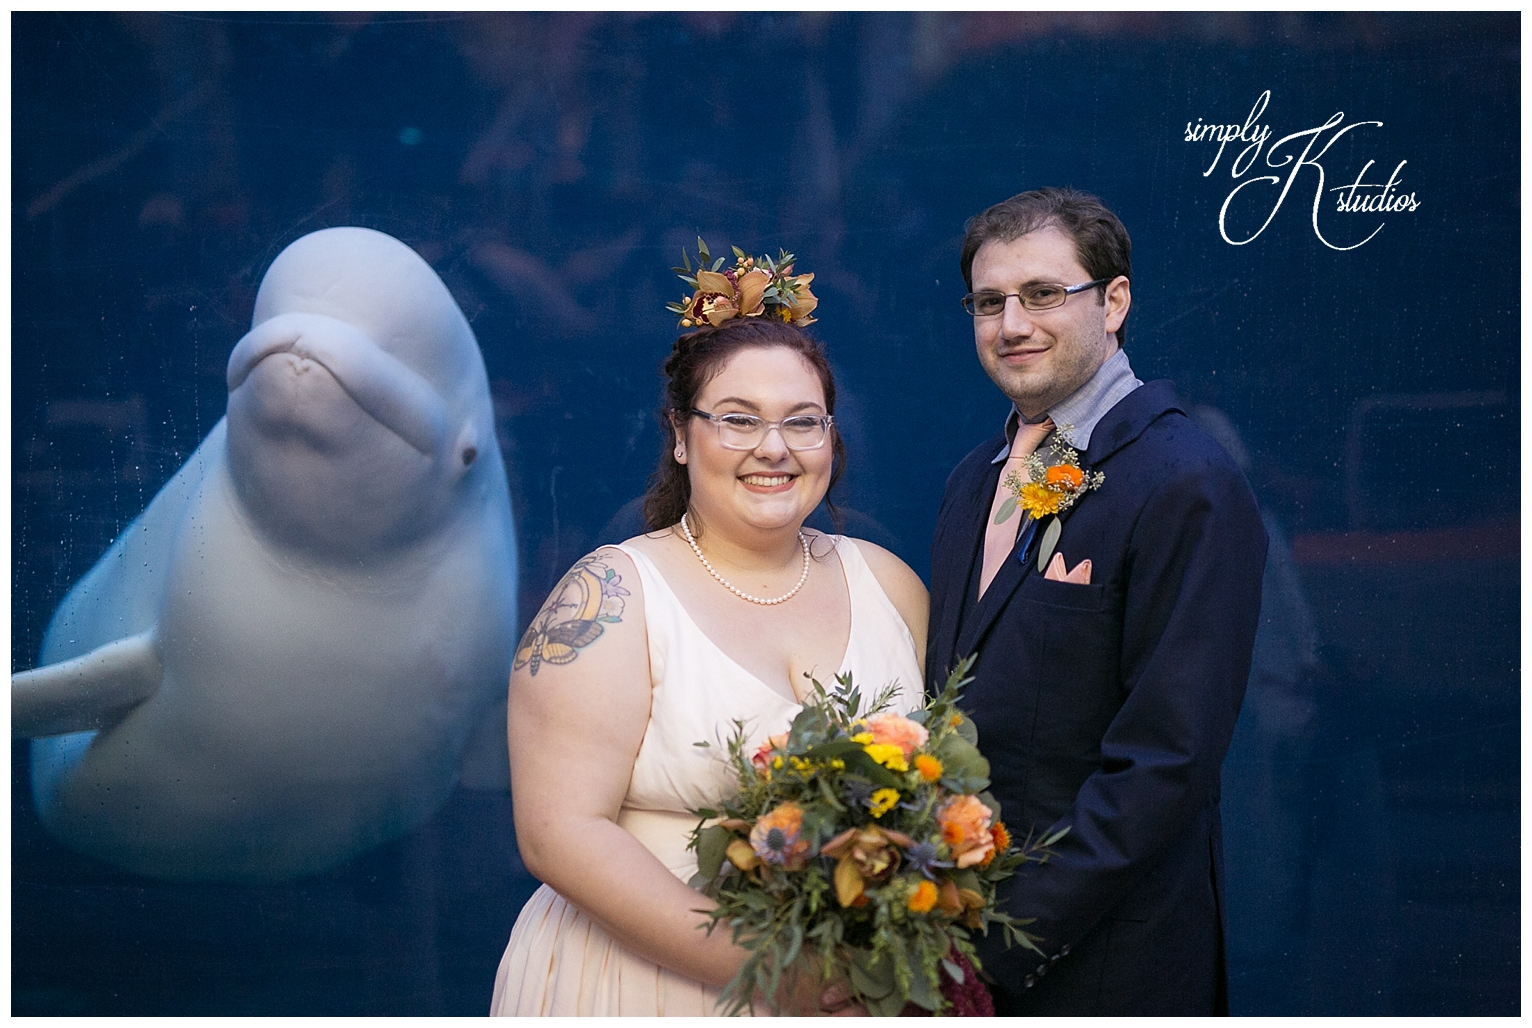 Wedding Photos at Mystic Aquarium.jpg